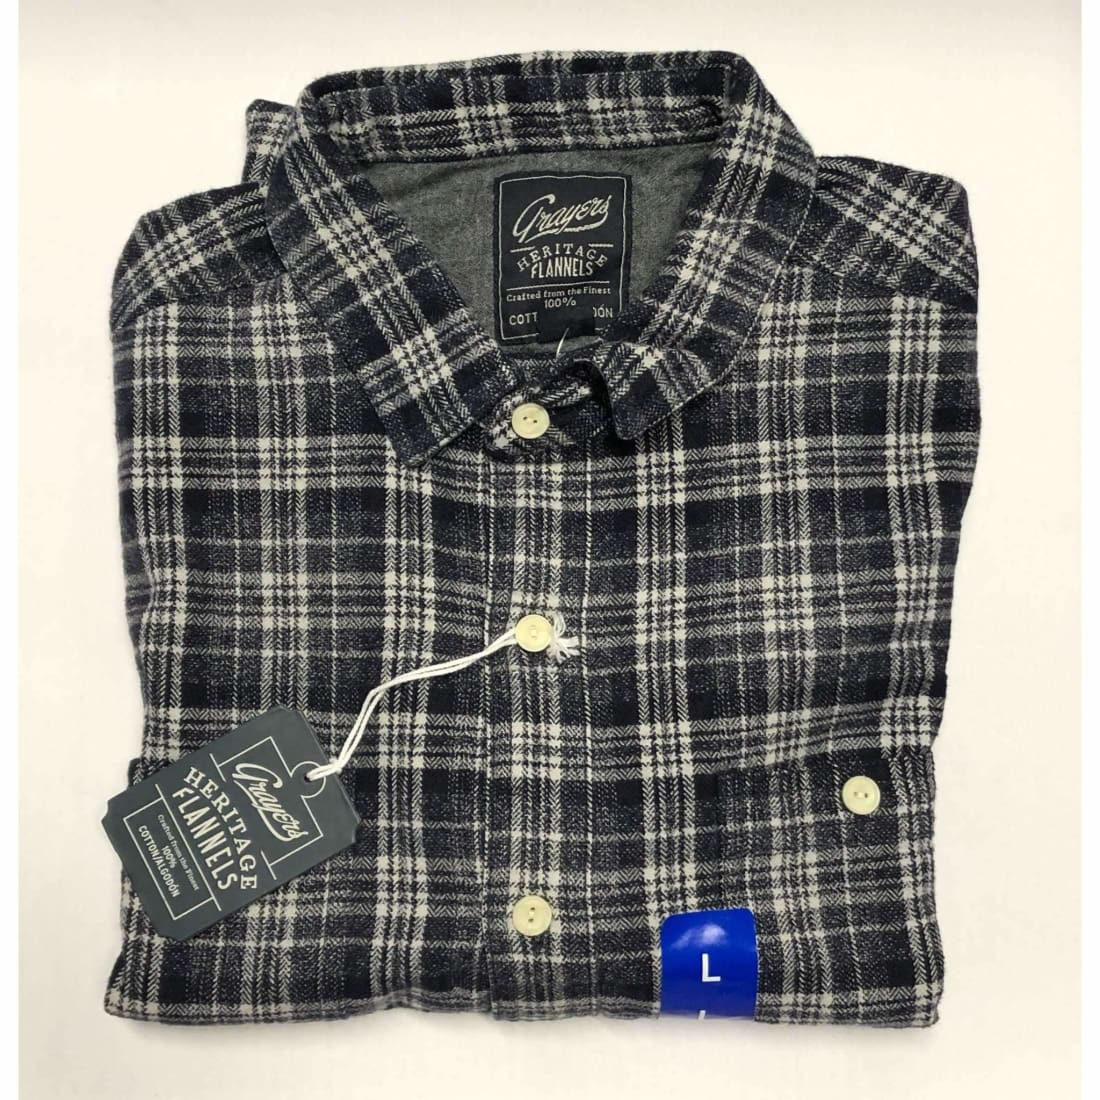 Grayers Mens Heritage Flannels 100% Cotton M / Blue/white Casual Shirts